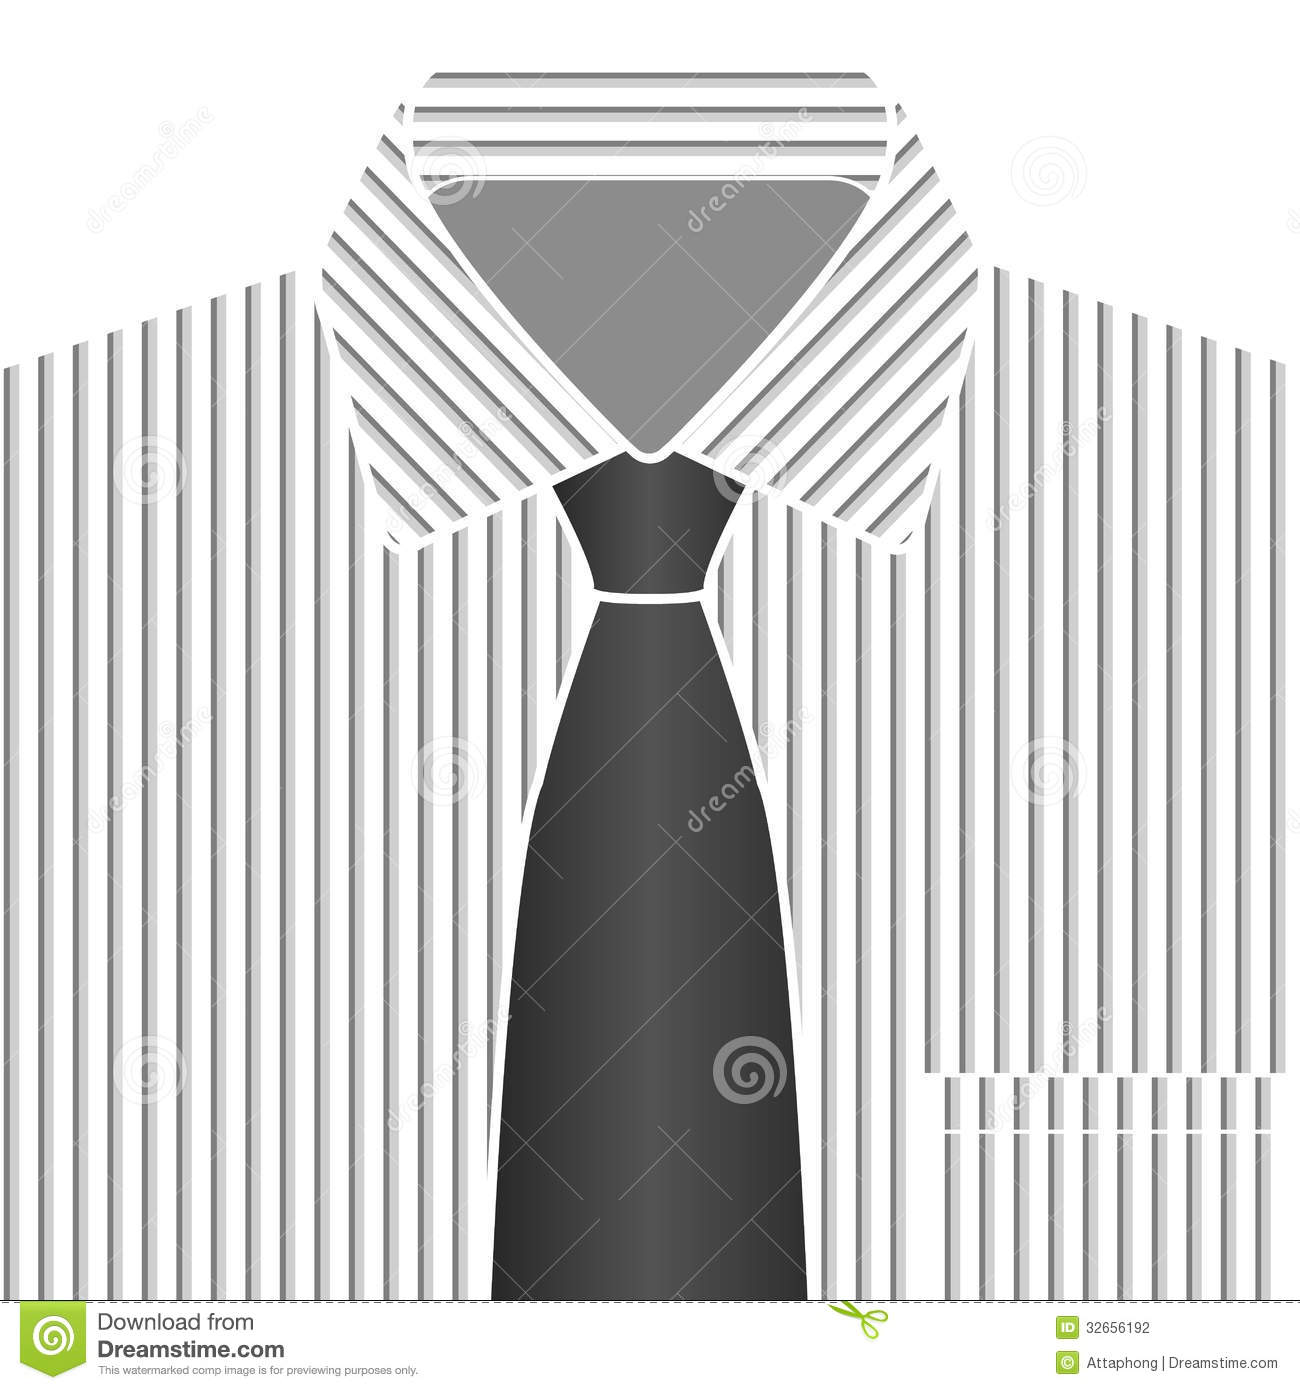 shirt and tie clipart black and white grey tone shirt and